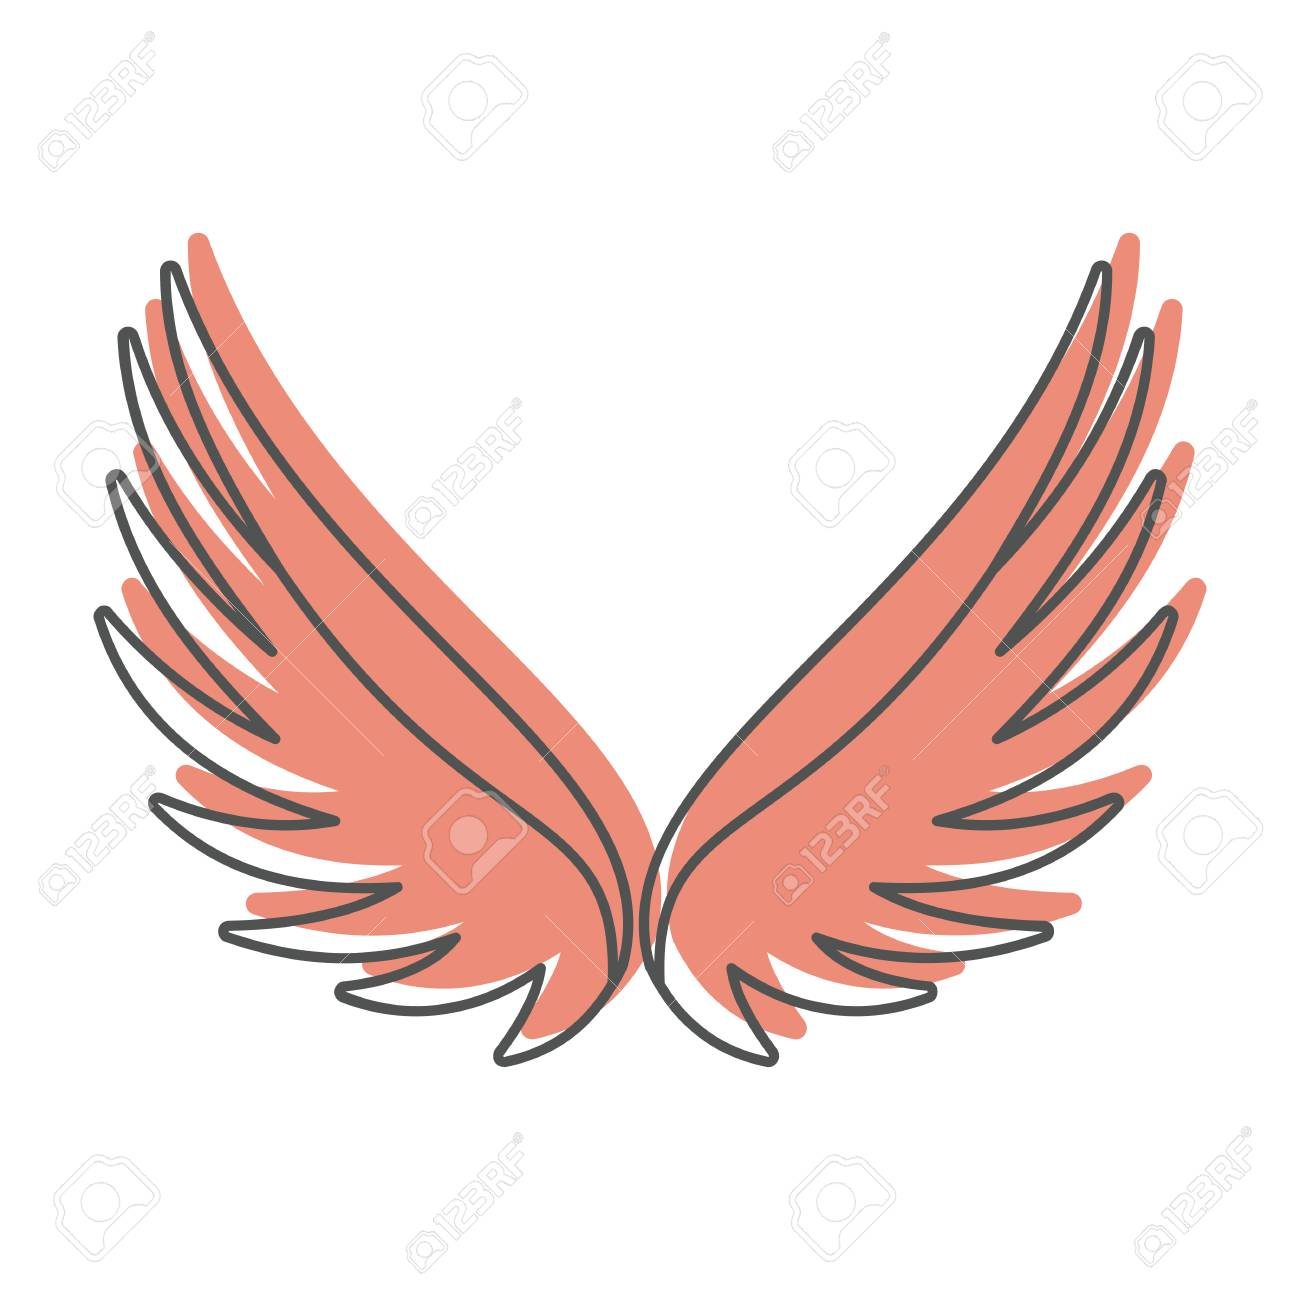 angel wings doodle icon vector illustration for design and web rh 123rf com angel wings vector free download angel wings vector silhouette